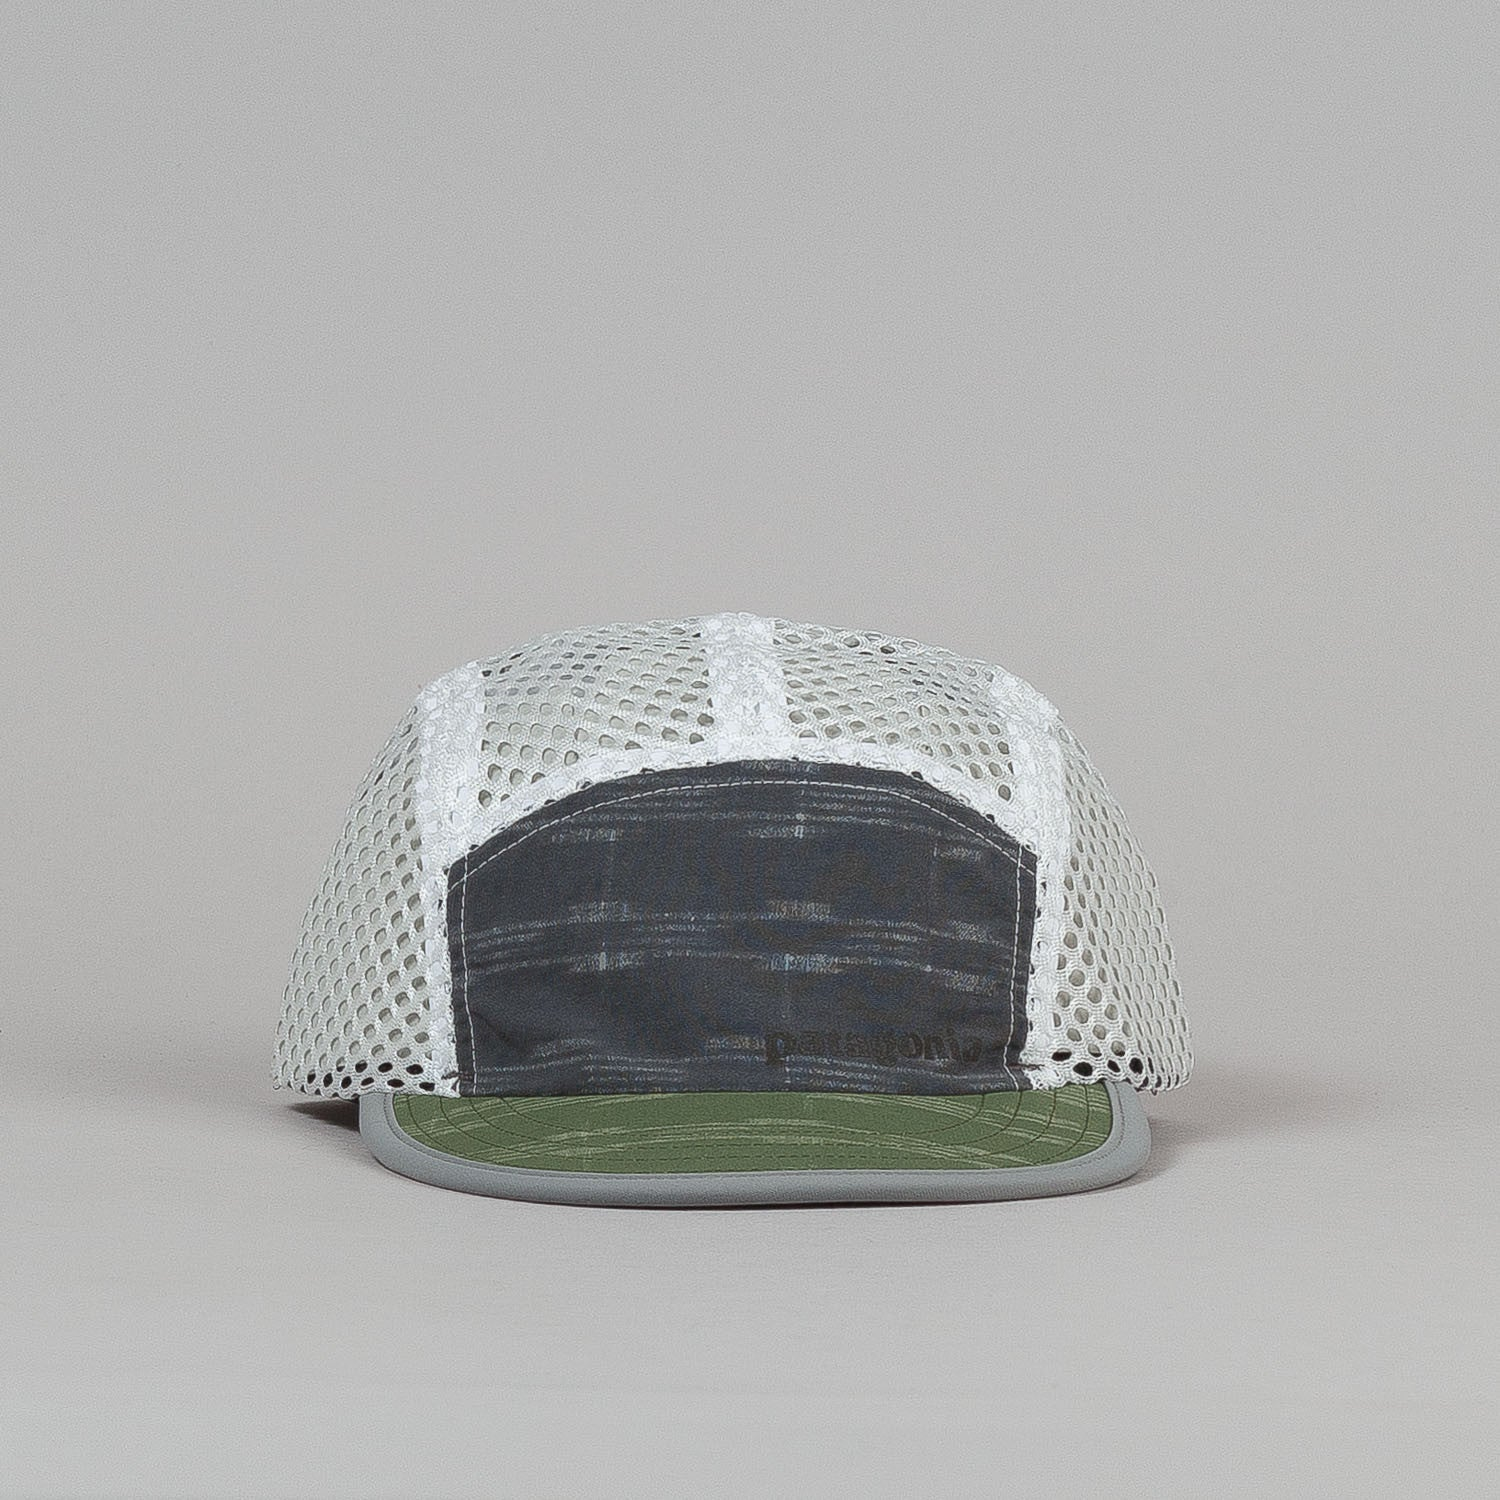 Patagonia Duckbill Cap - Ikat Line / Forge Grey